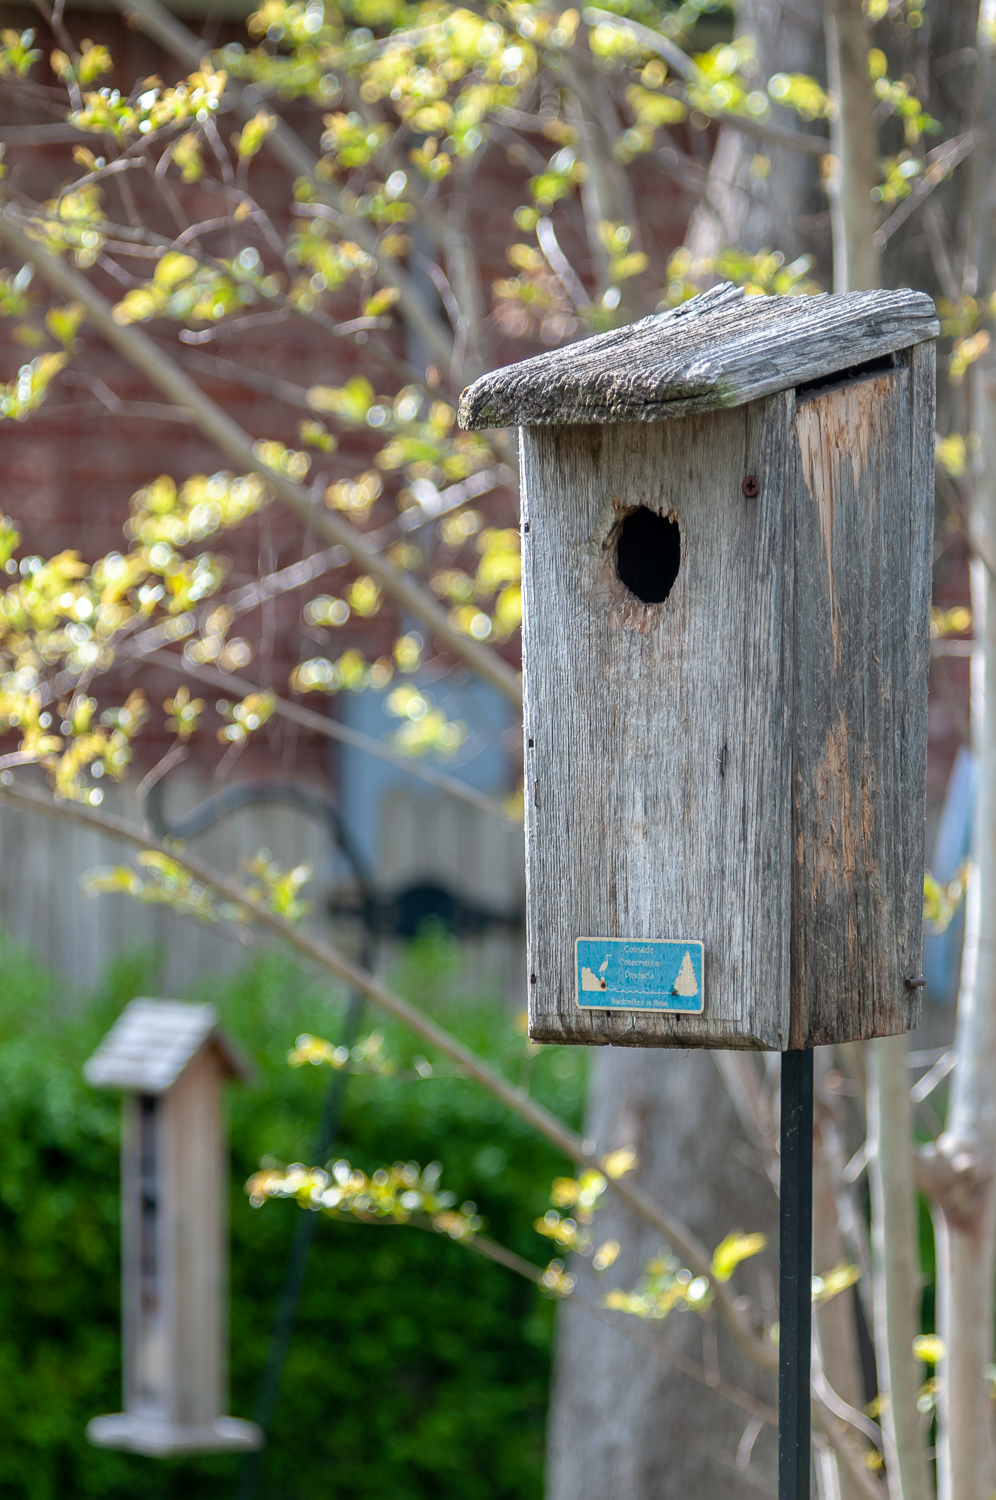 Nest Boxes - We have had this bluebird box for many years – I think that is obvious. Our Eastern Bluebirds have produced 2-3 broods the past two years!